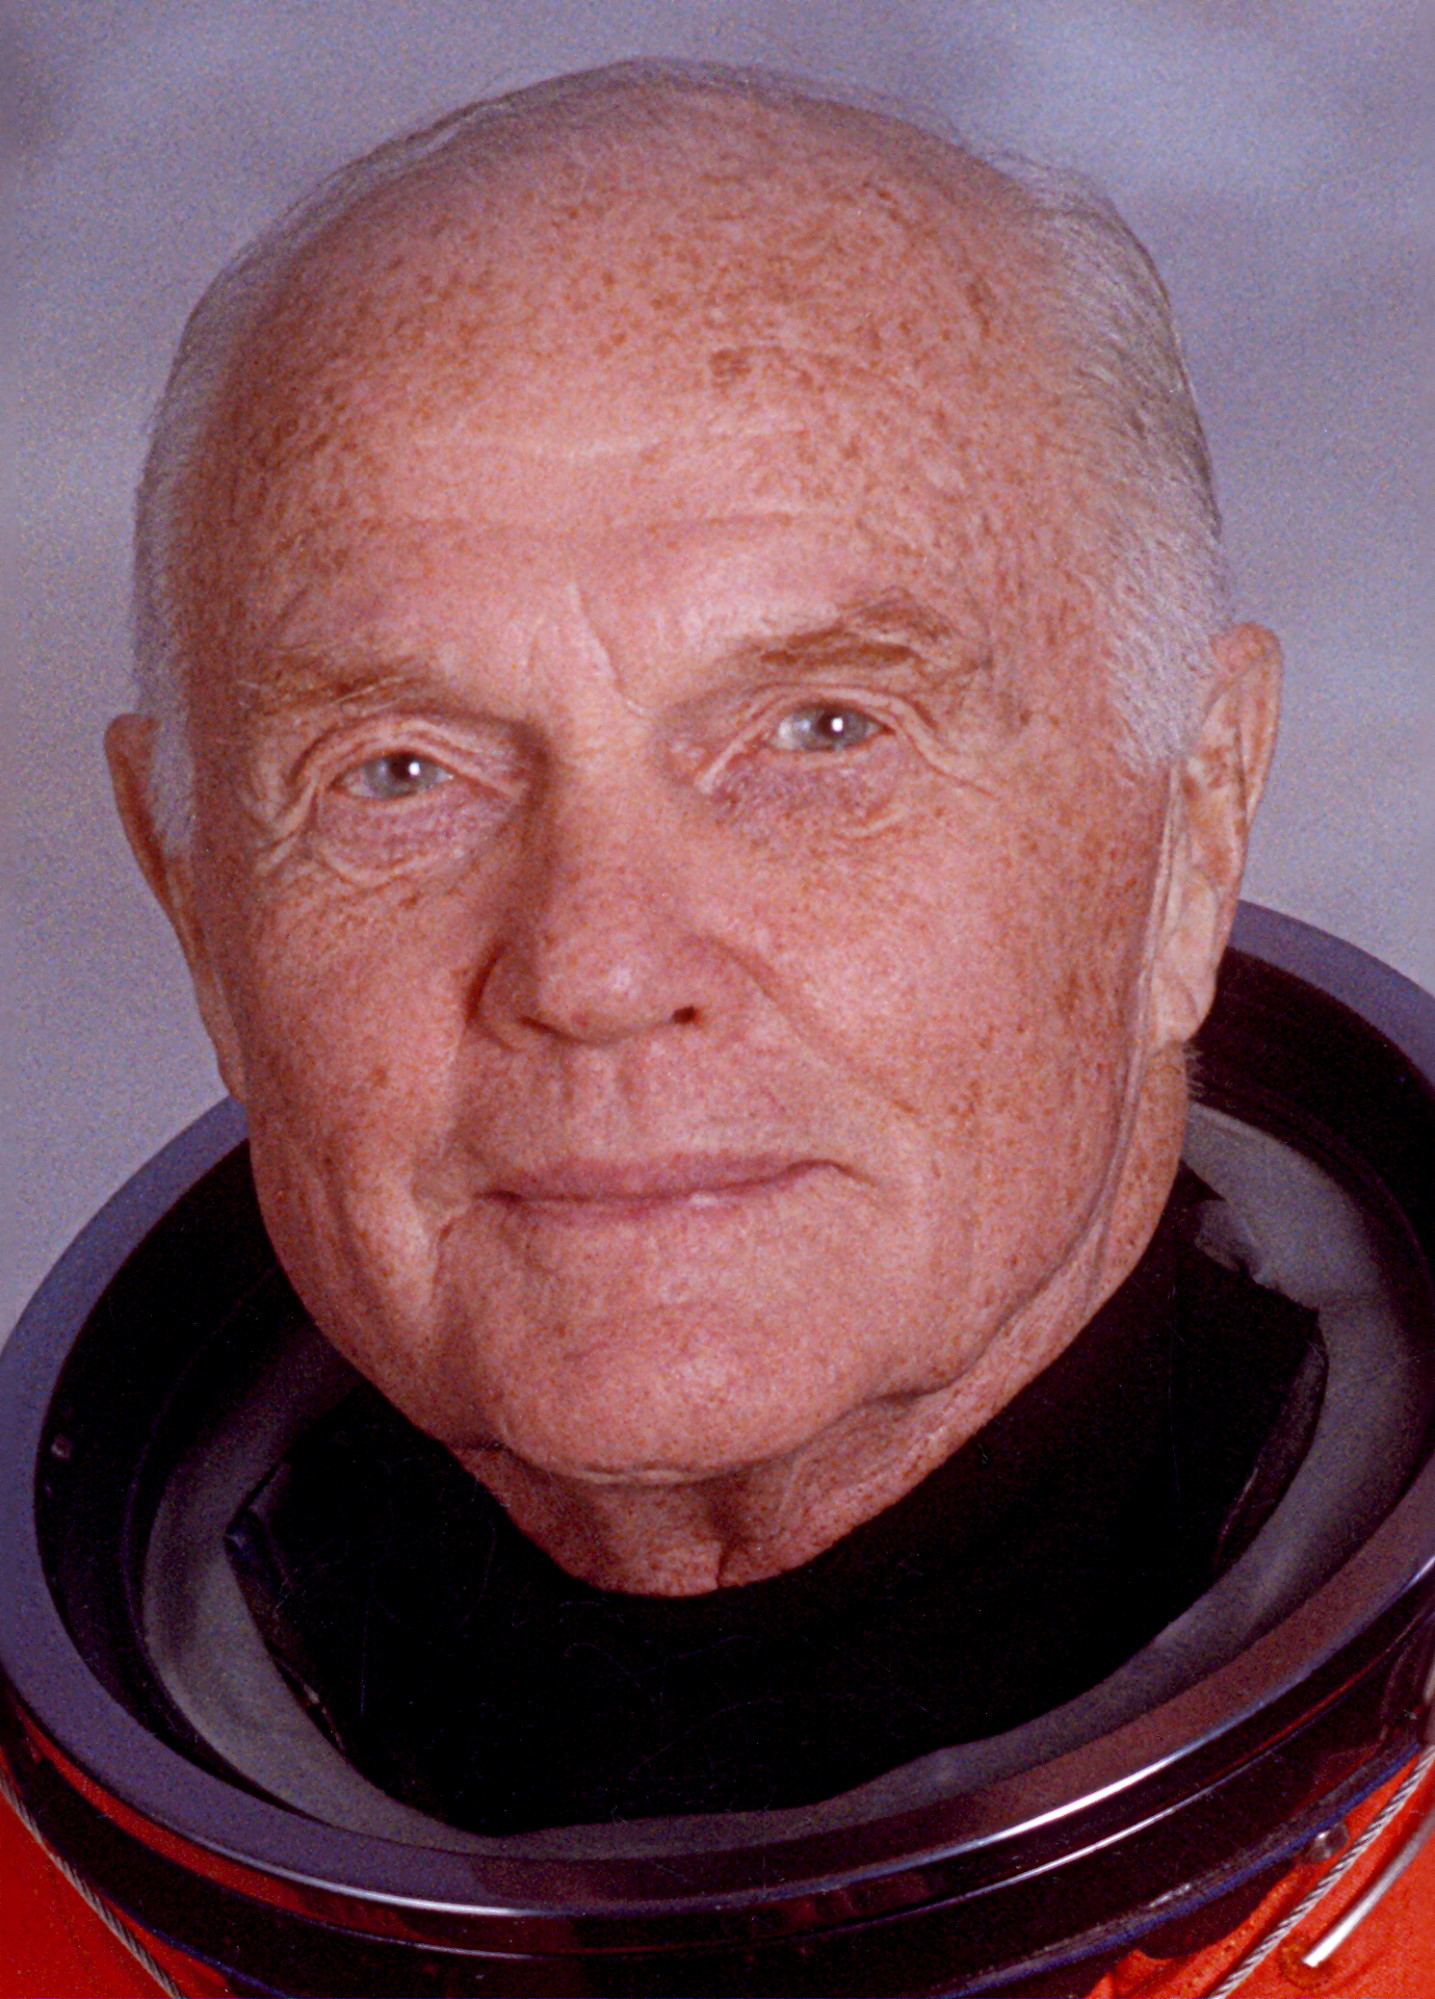 john glenn biography John herschel glenn jr, was a military test pilot, selected by nasa for its maiden manned space flight part of the mercury seven project, he was a back up to the first two americans, alan shepard and virgil 'gus' grissom in space.